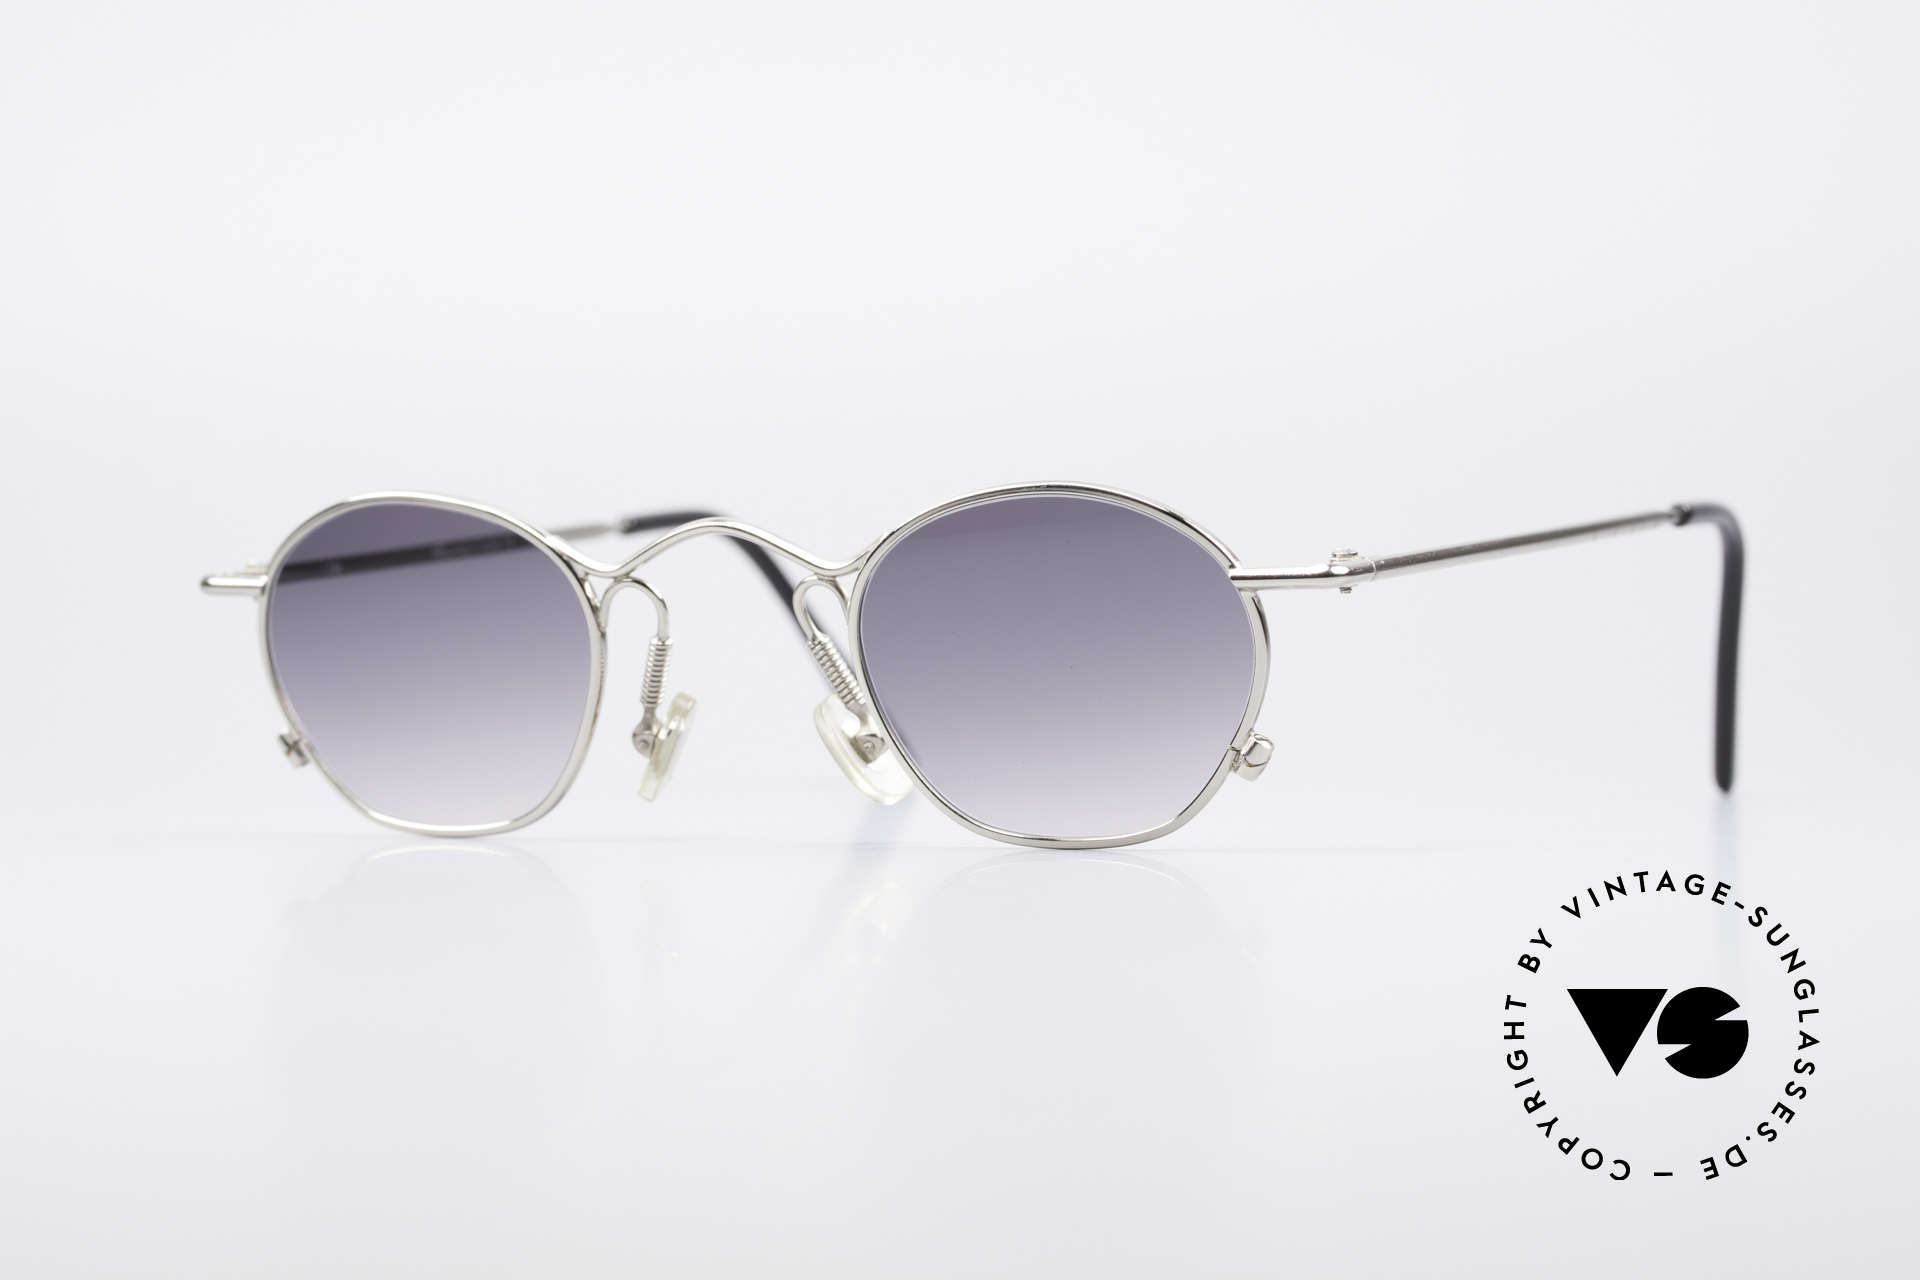 IDC 101 True Vintage No Retro Shades, distinctive 90's designer sunglasses by IDC, France, Made for Men and Women